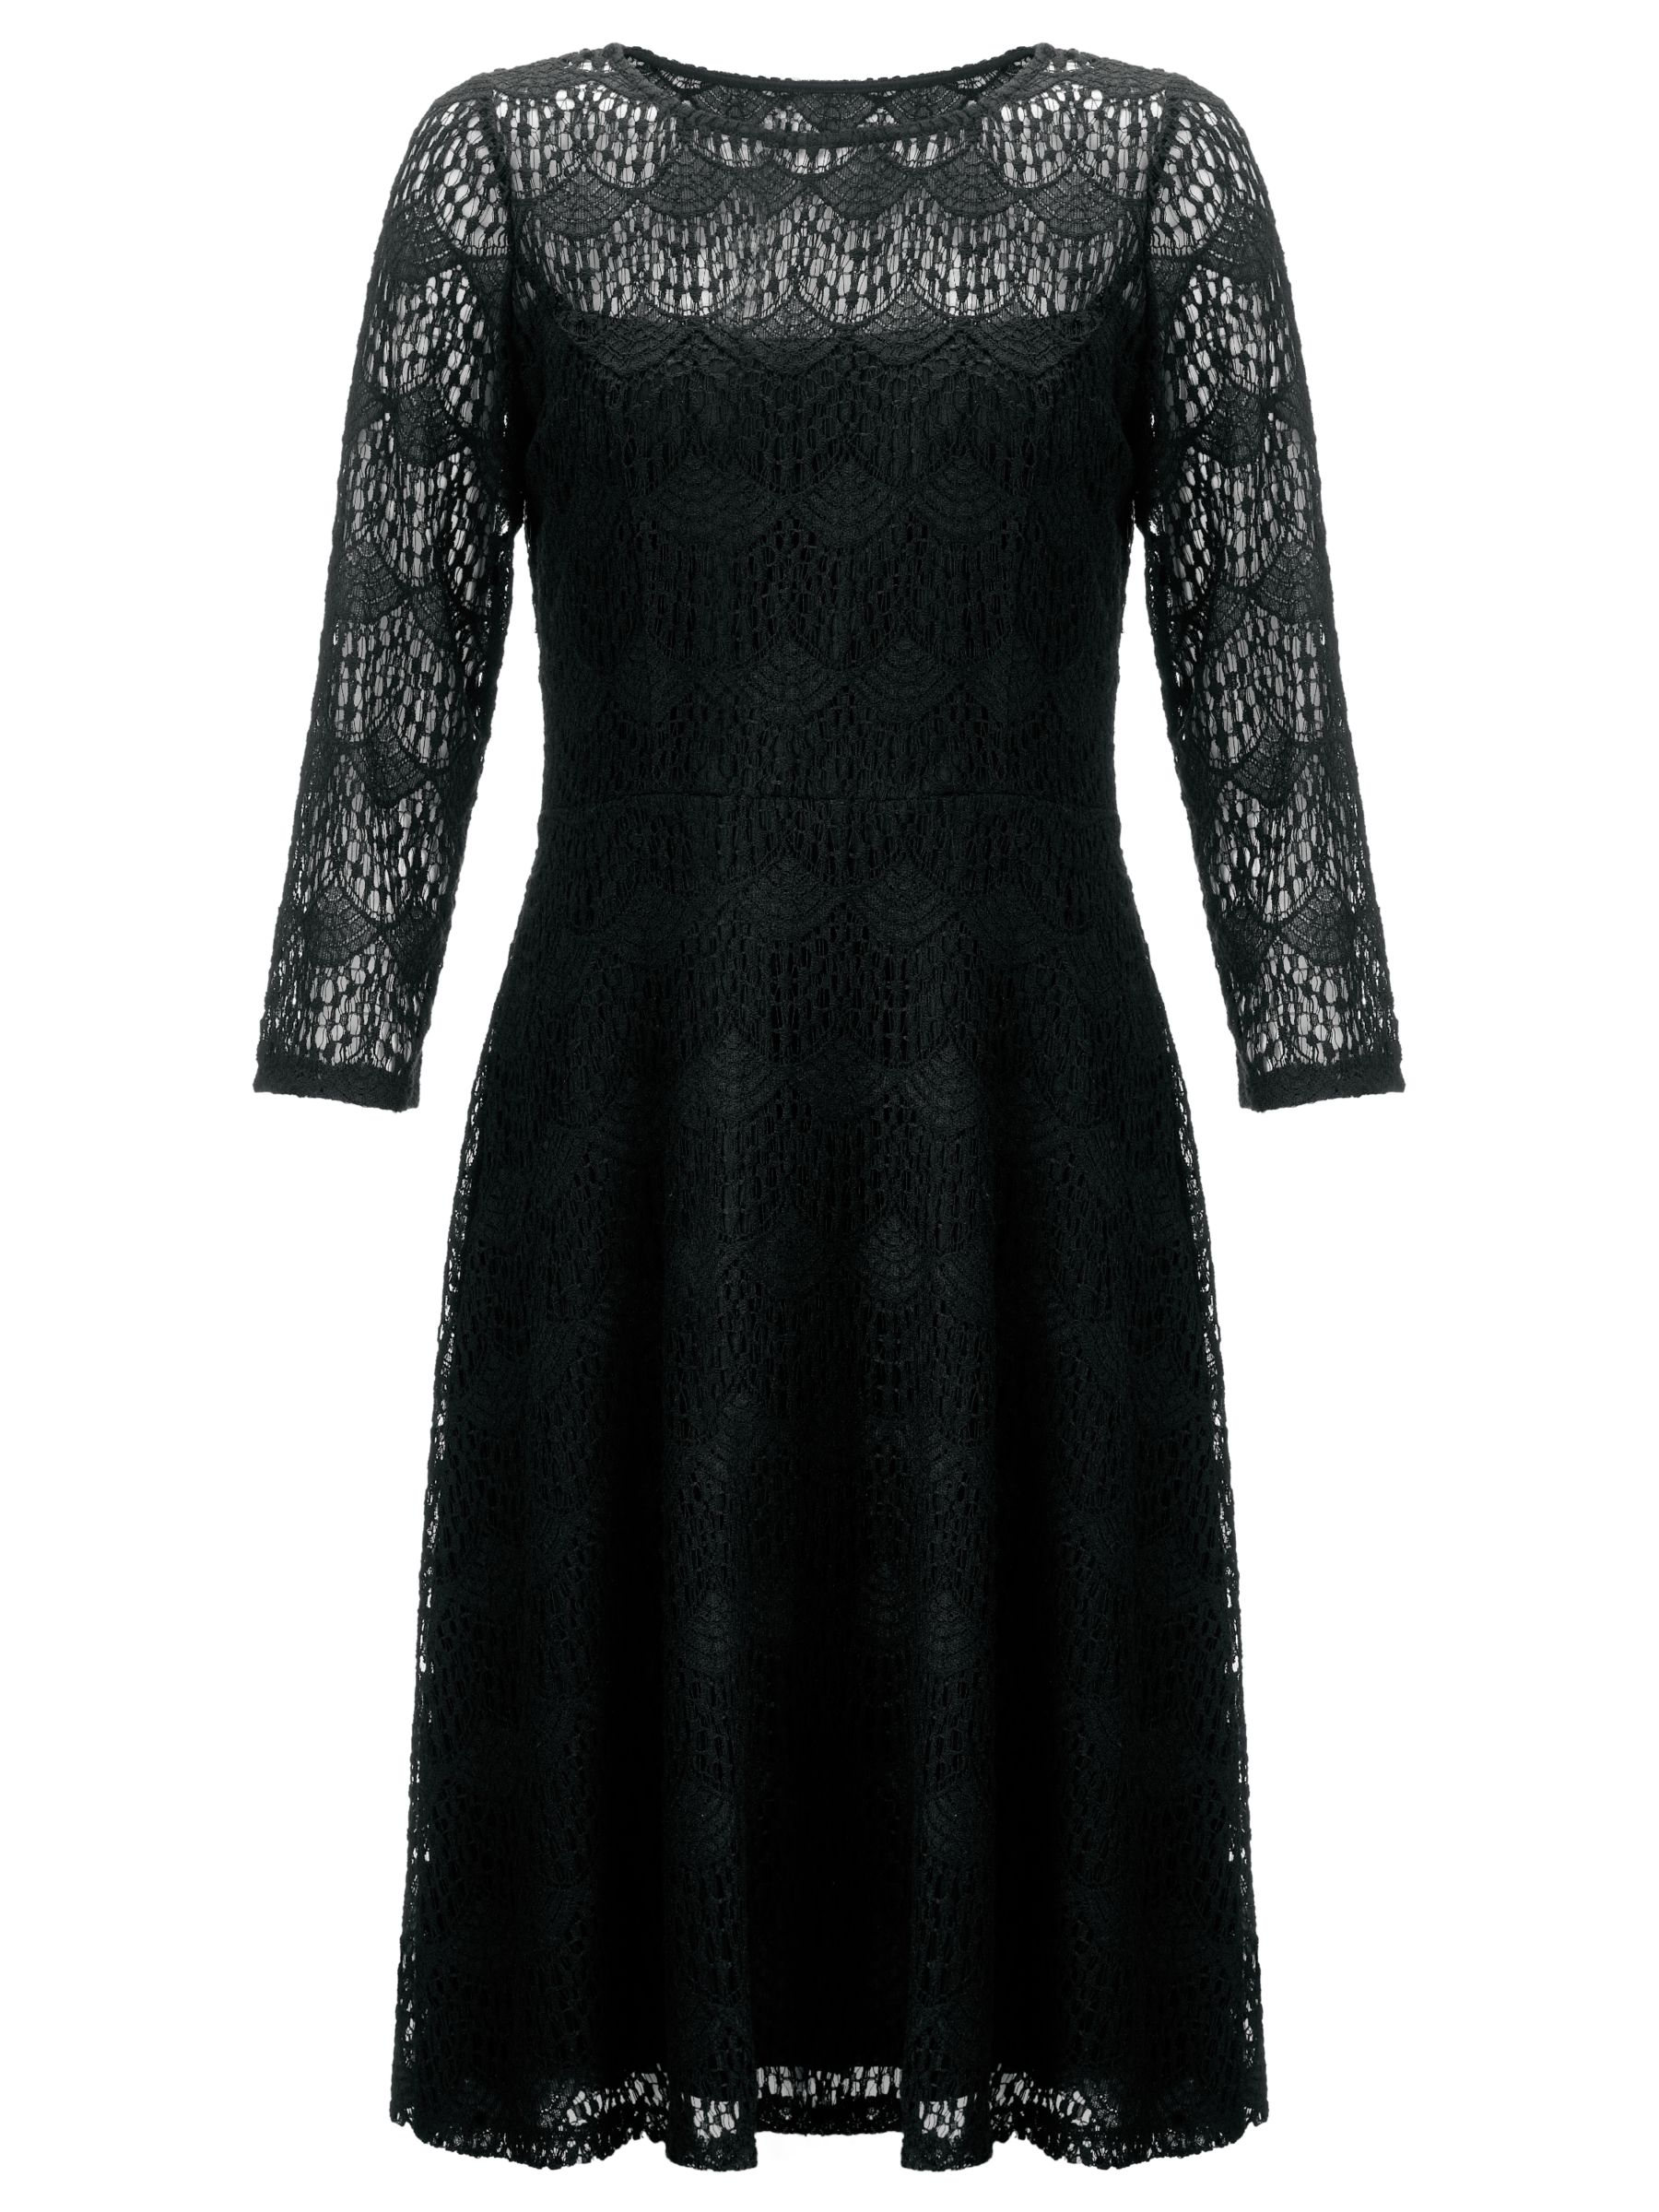 somerset by alice temperley deco lace dress black, somerset, alice, temperley, deco, lace, dress, black, somerset by alice temperley, clearance, womenswear offers, womens dresses offers, women, party outfits, lace dress, john lewis brands, special offers, womens dresses, party dresses, edition magazine, little black dress, fashion magazine, brands l-z, 1509243